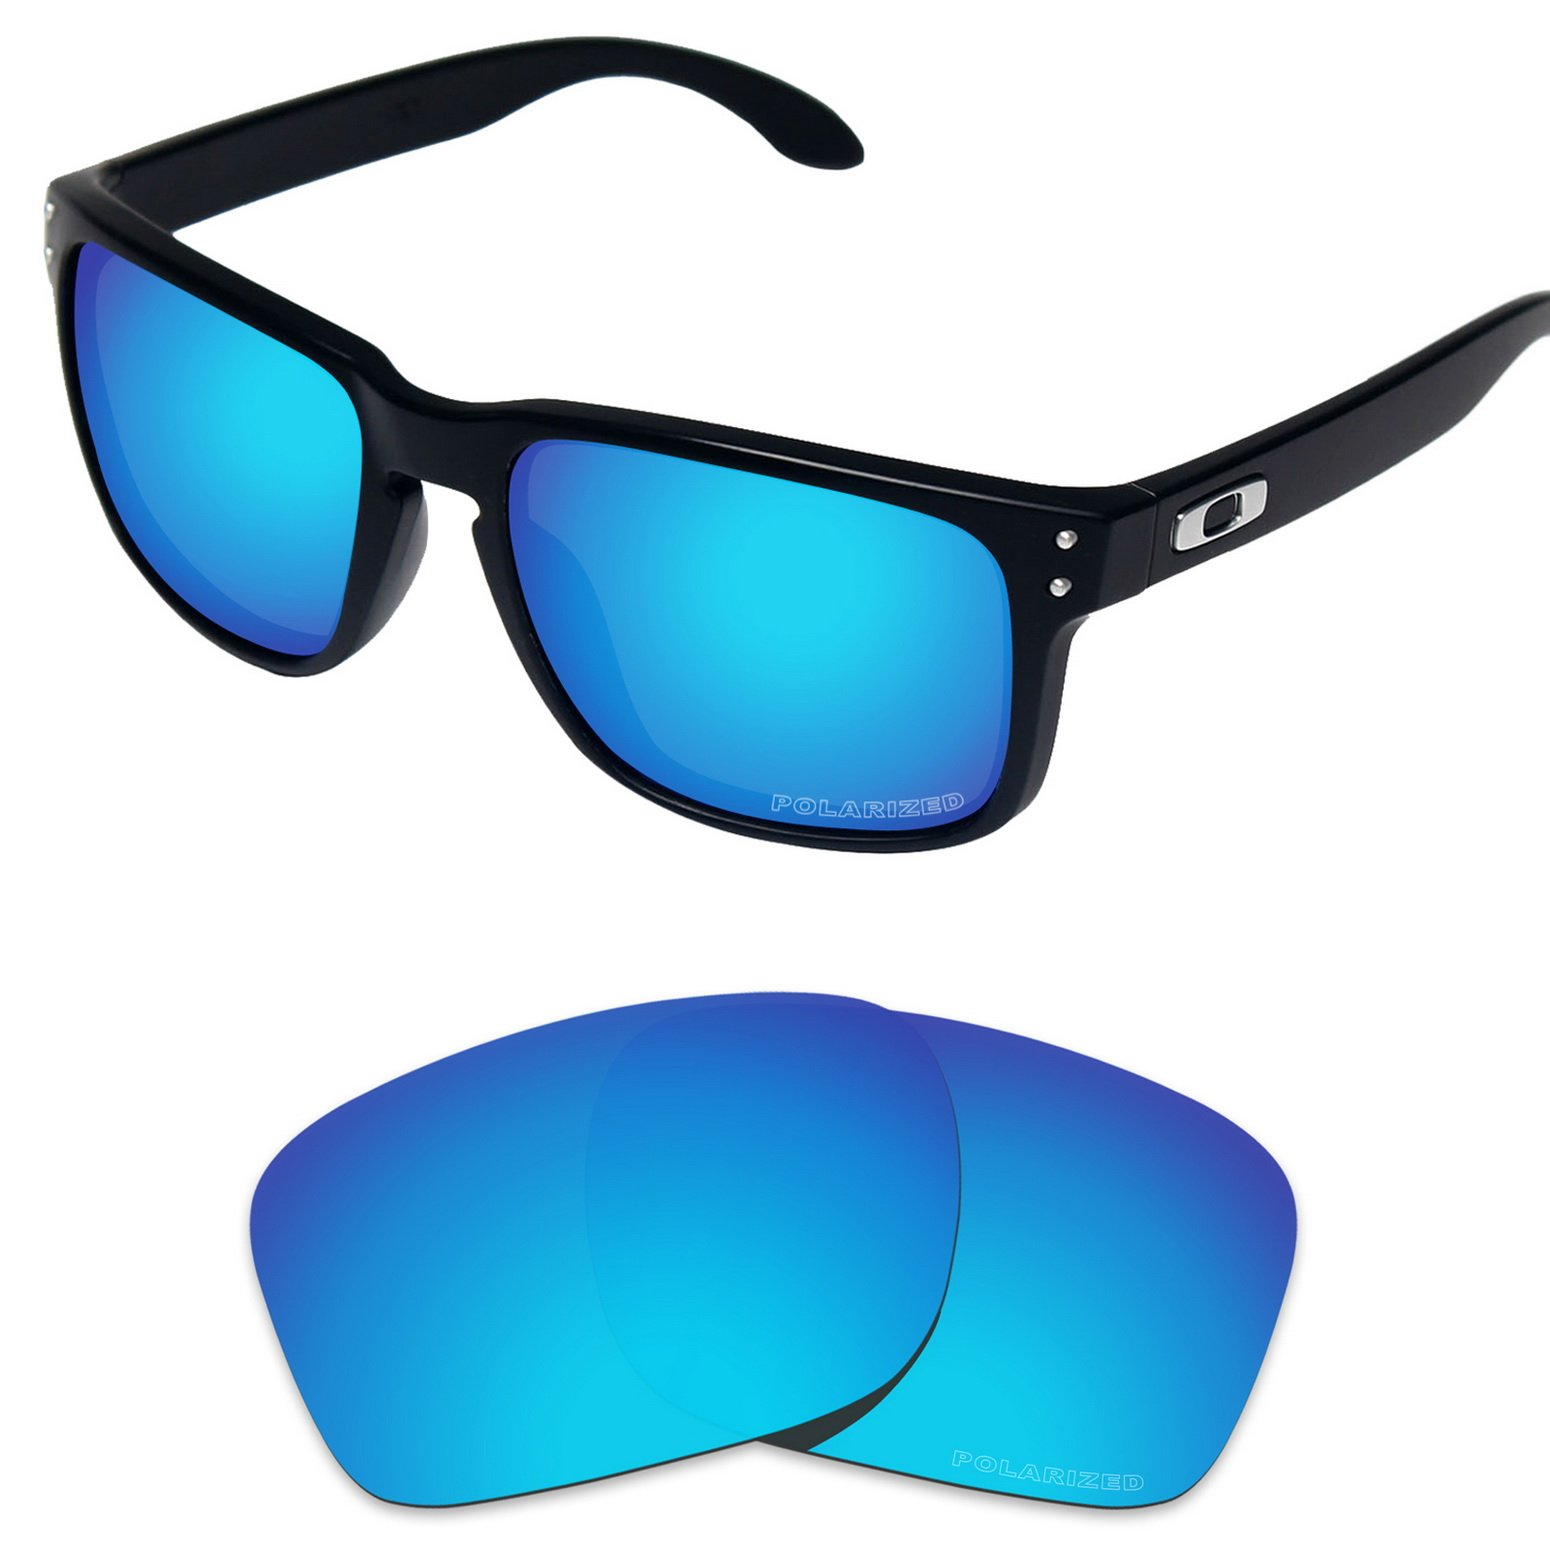 Tintart Performance Replacement Lenses for Oakley Holbrook Sunglass Polarized Etched-Sky Blue